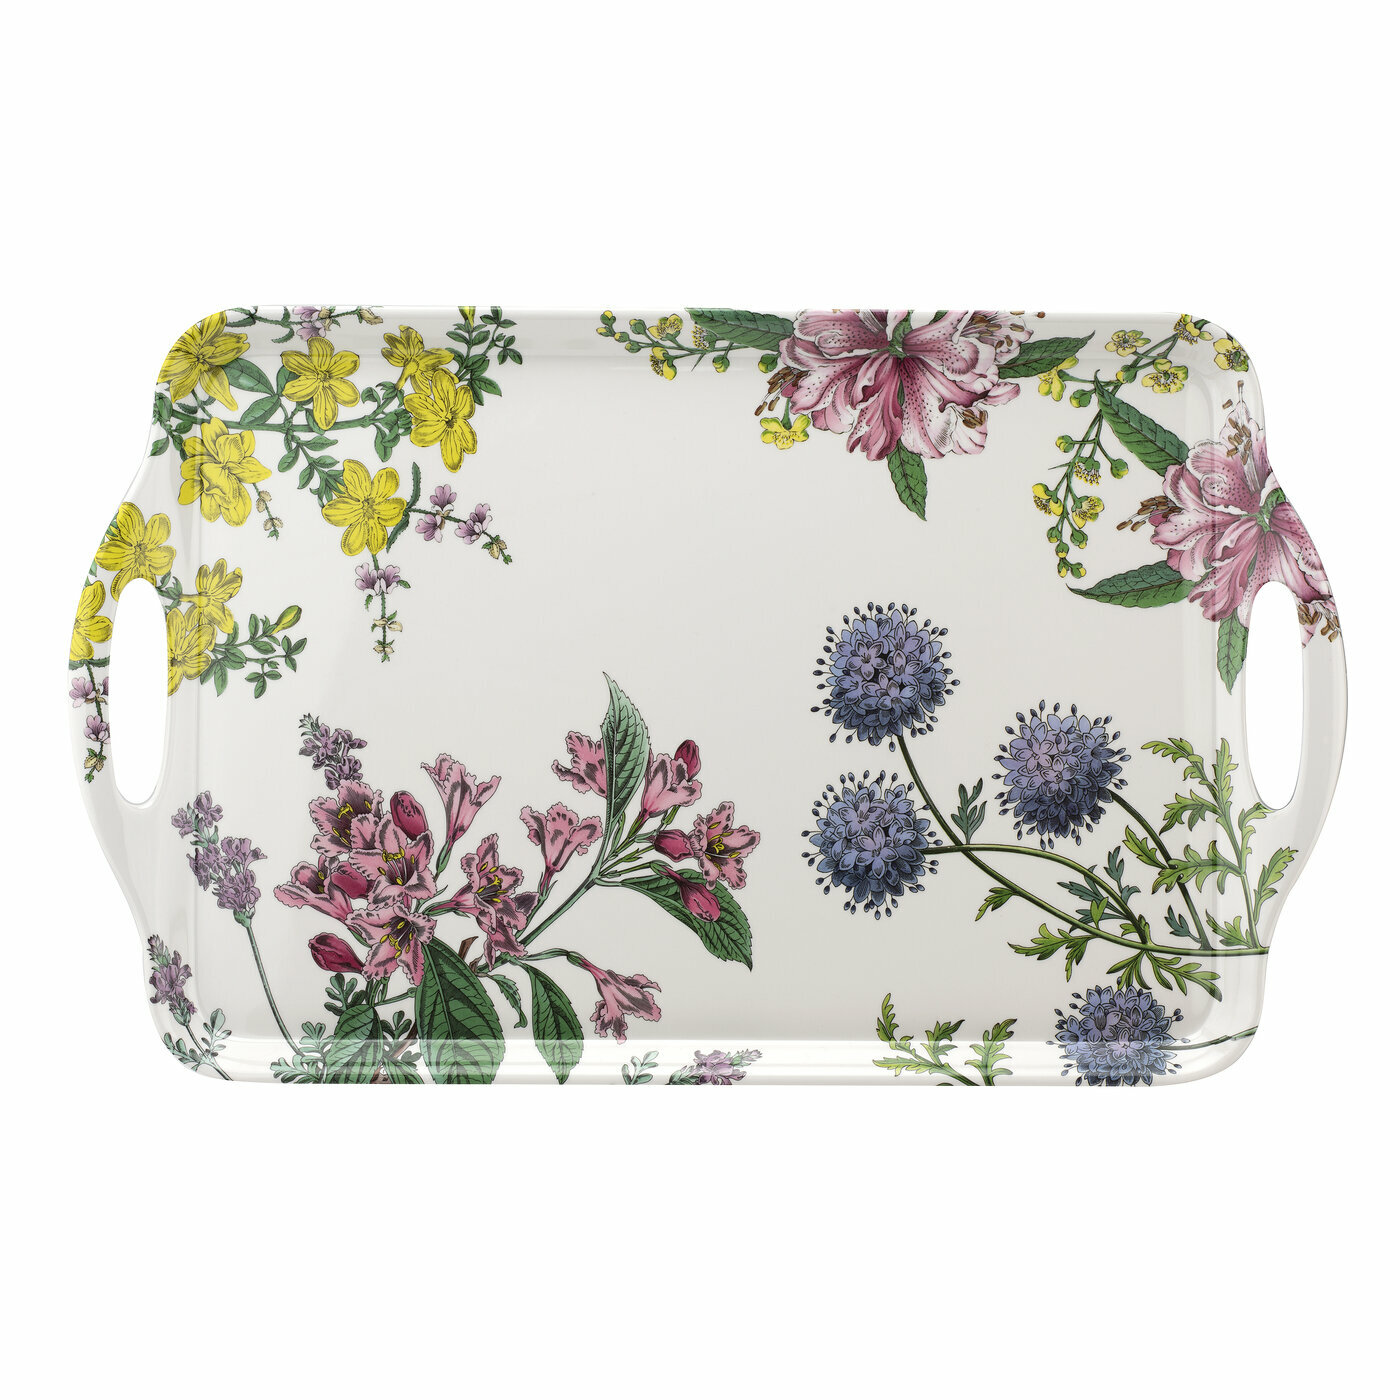 Pimpernel Stafford Blooms Placemats Large Set Of 4 Home Place Mats